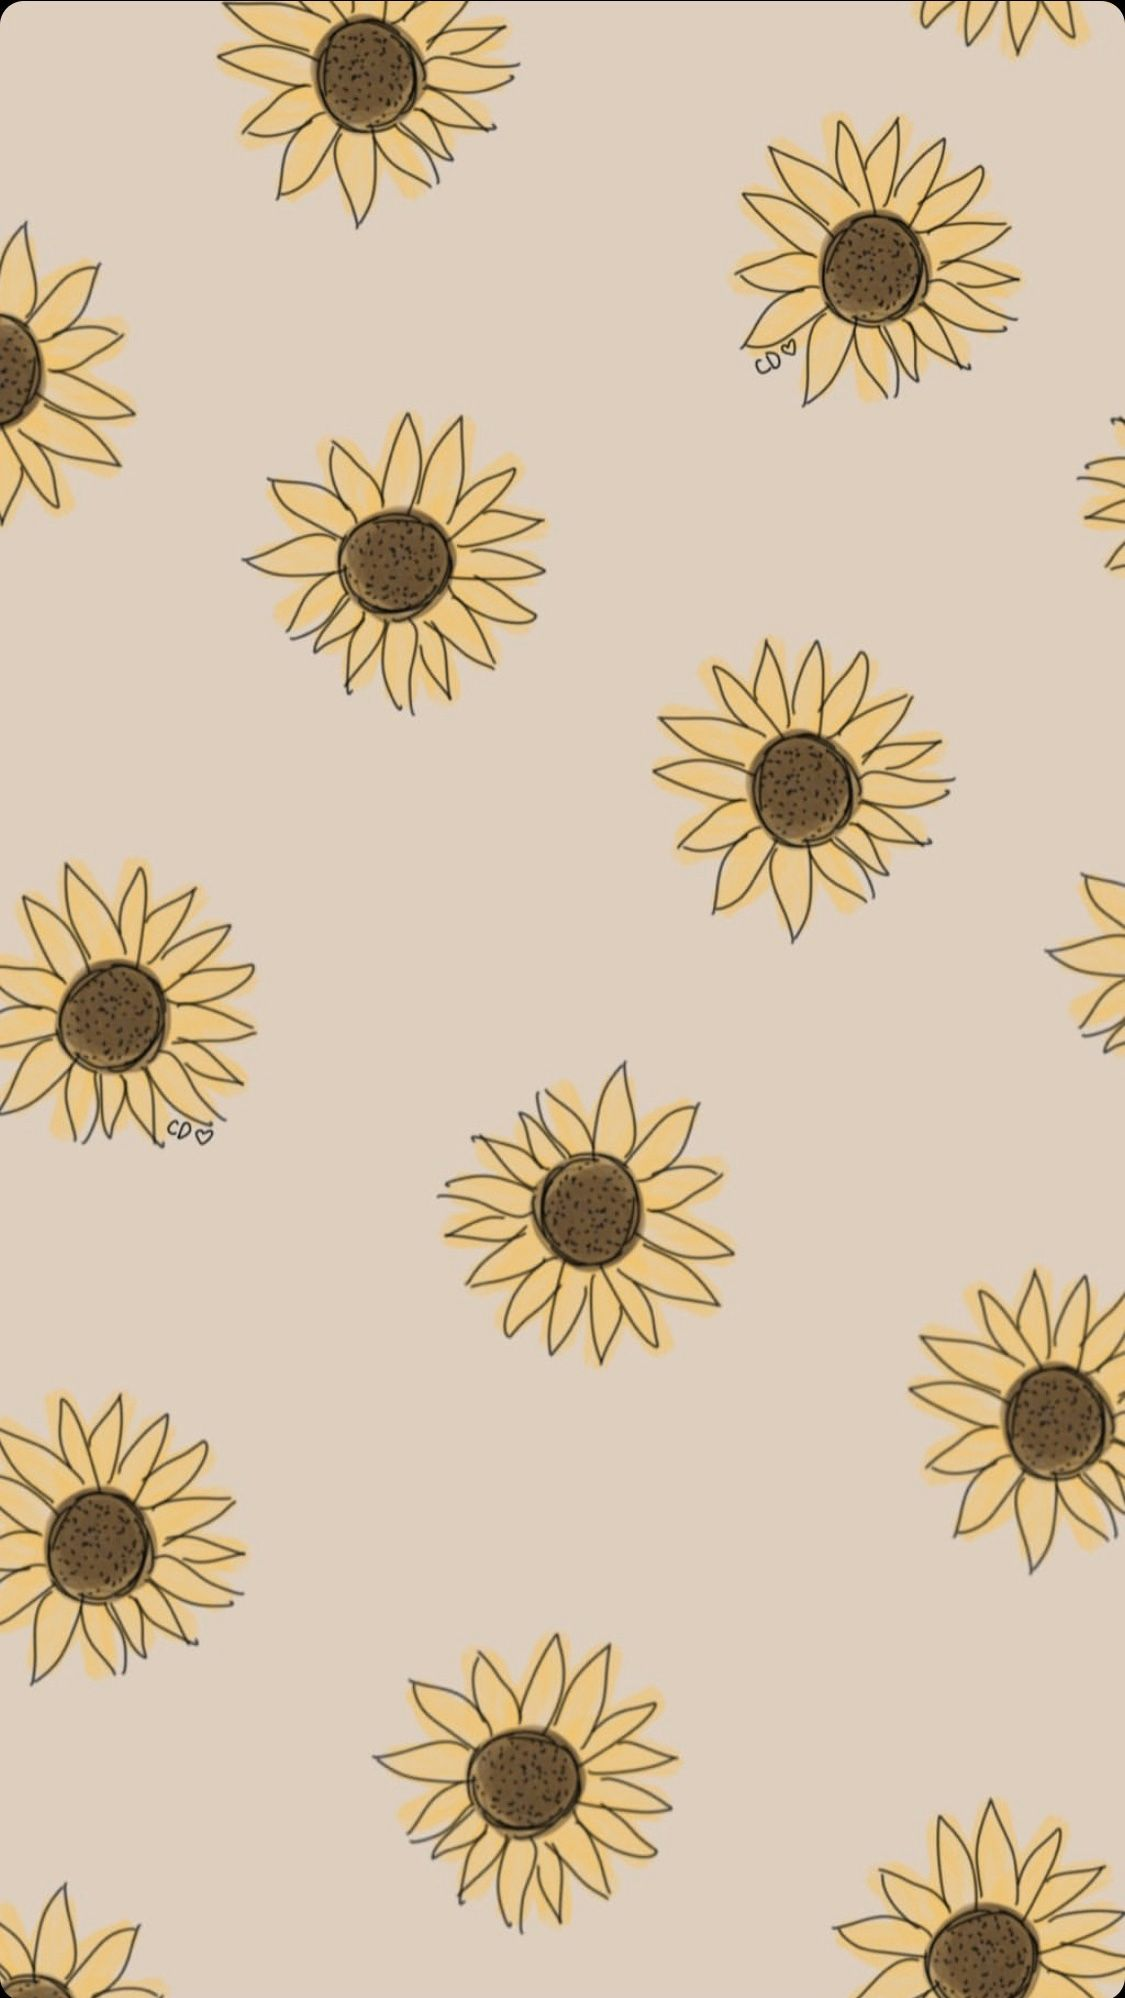 Pin By Sara Elizabeth On Phone Backgrounds Sunflower Iphone Wallpaper Iphone Background Wallpaper Sunflower Wallpaper